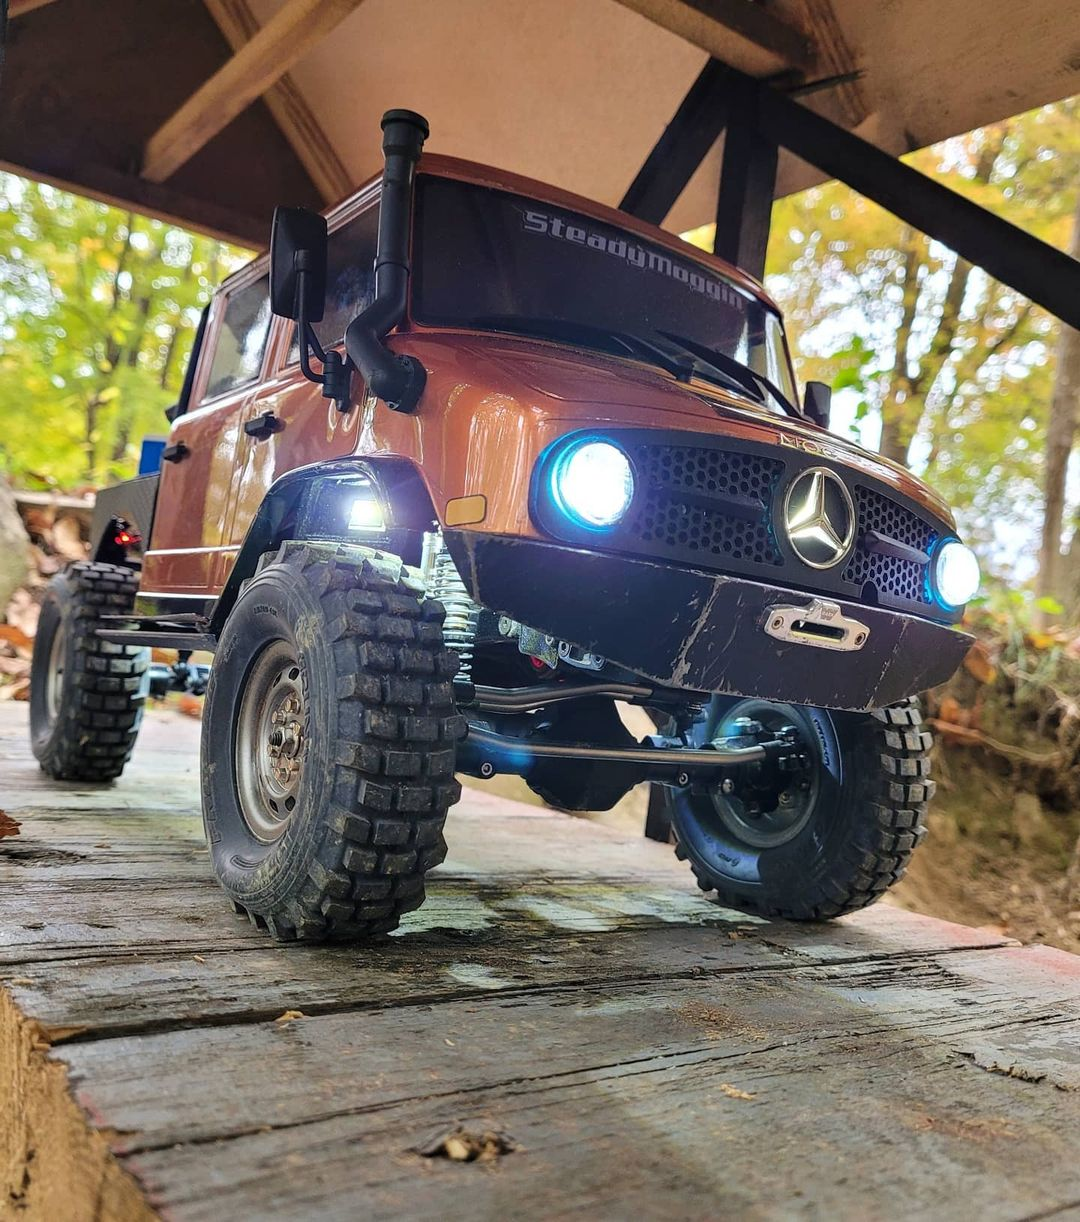 Details about  /Black Rear Bumper Bar w// Tow Hook U-hook For 1//10 AXIAL SCX10 II UMG10 4WD Car S